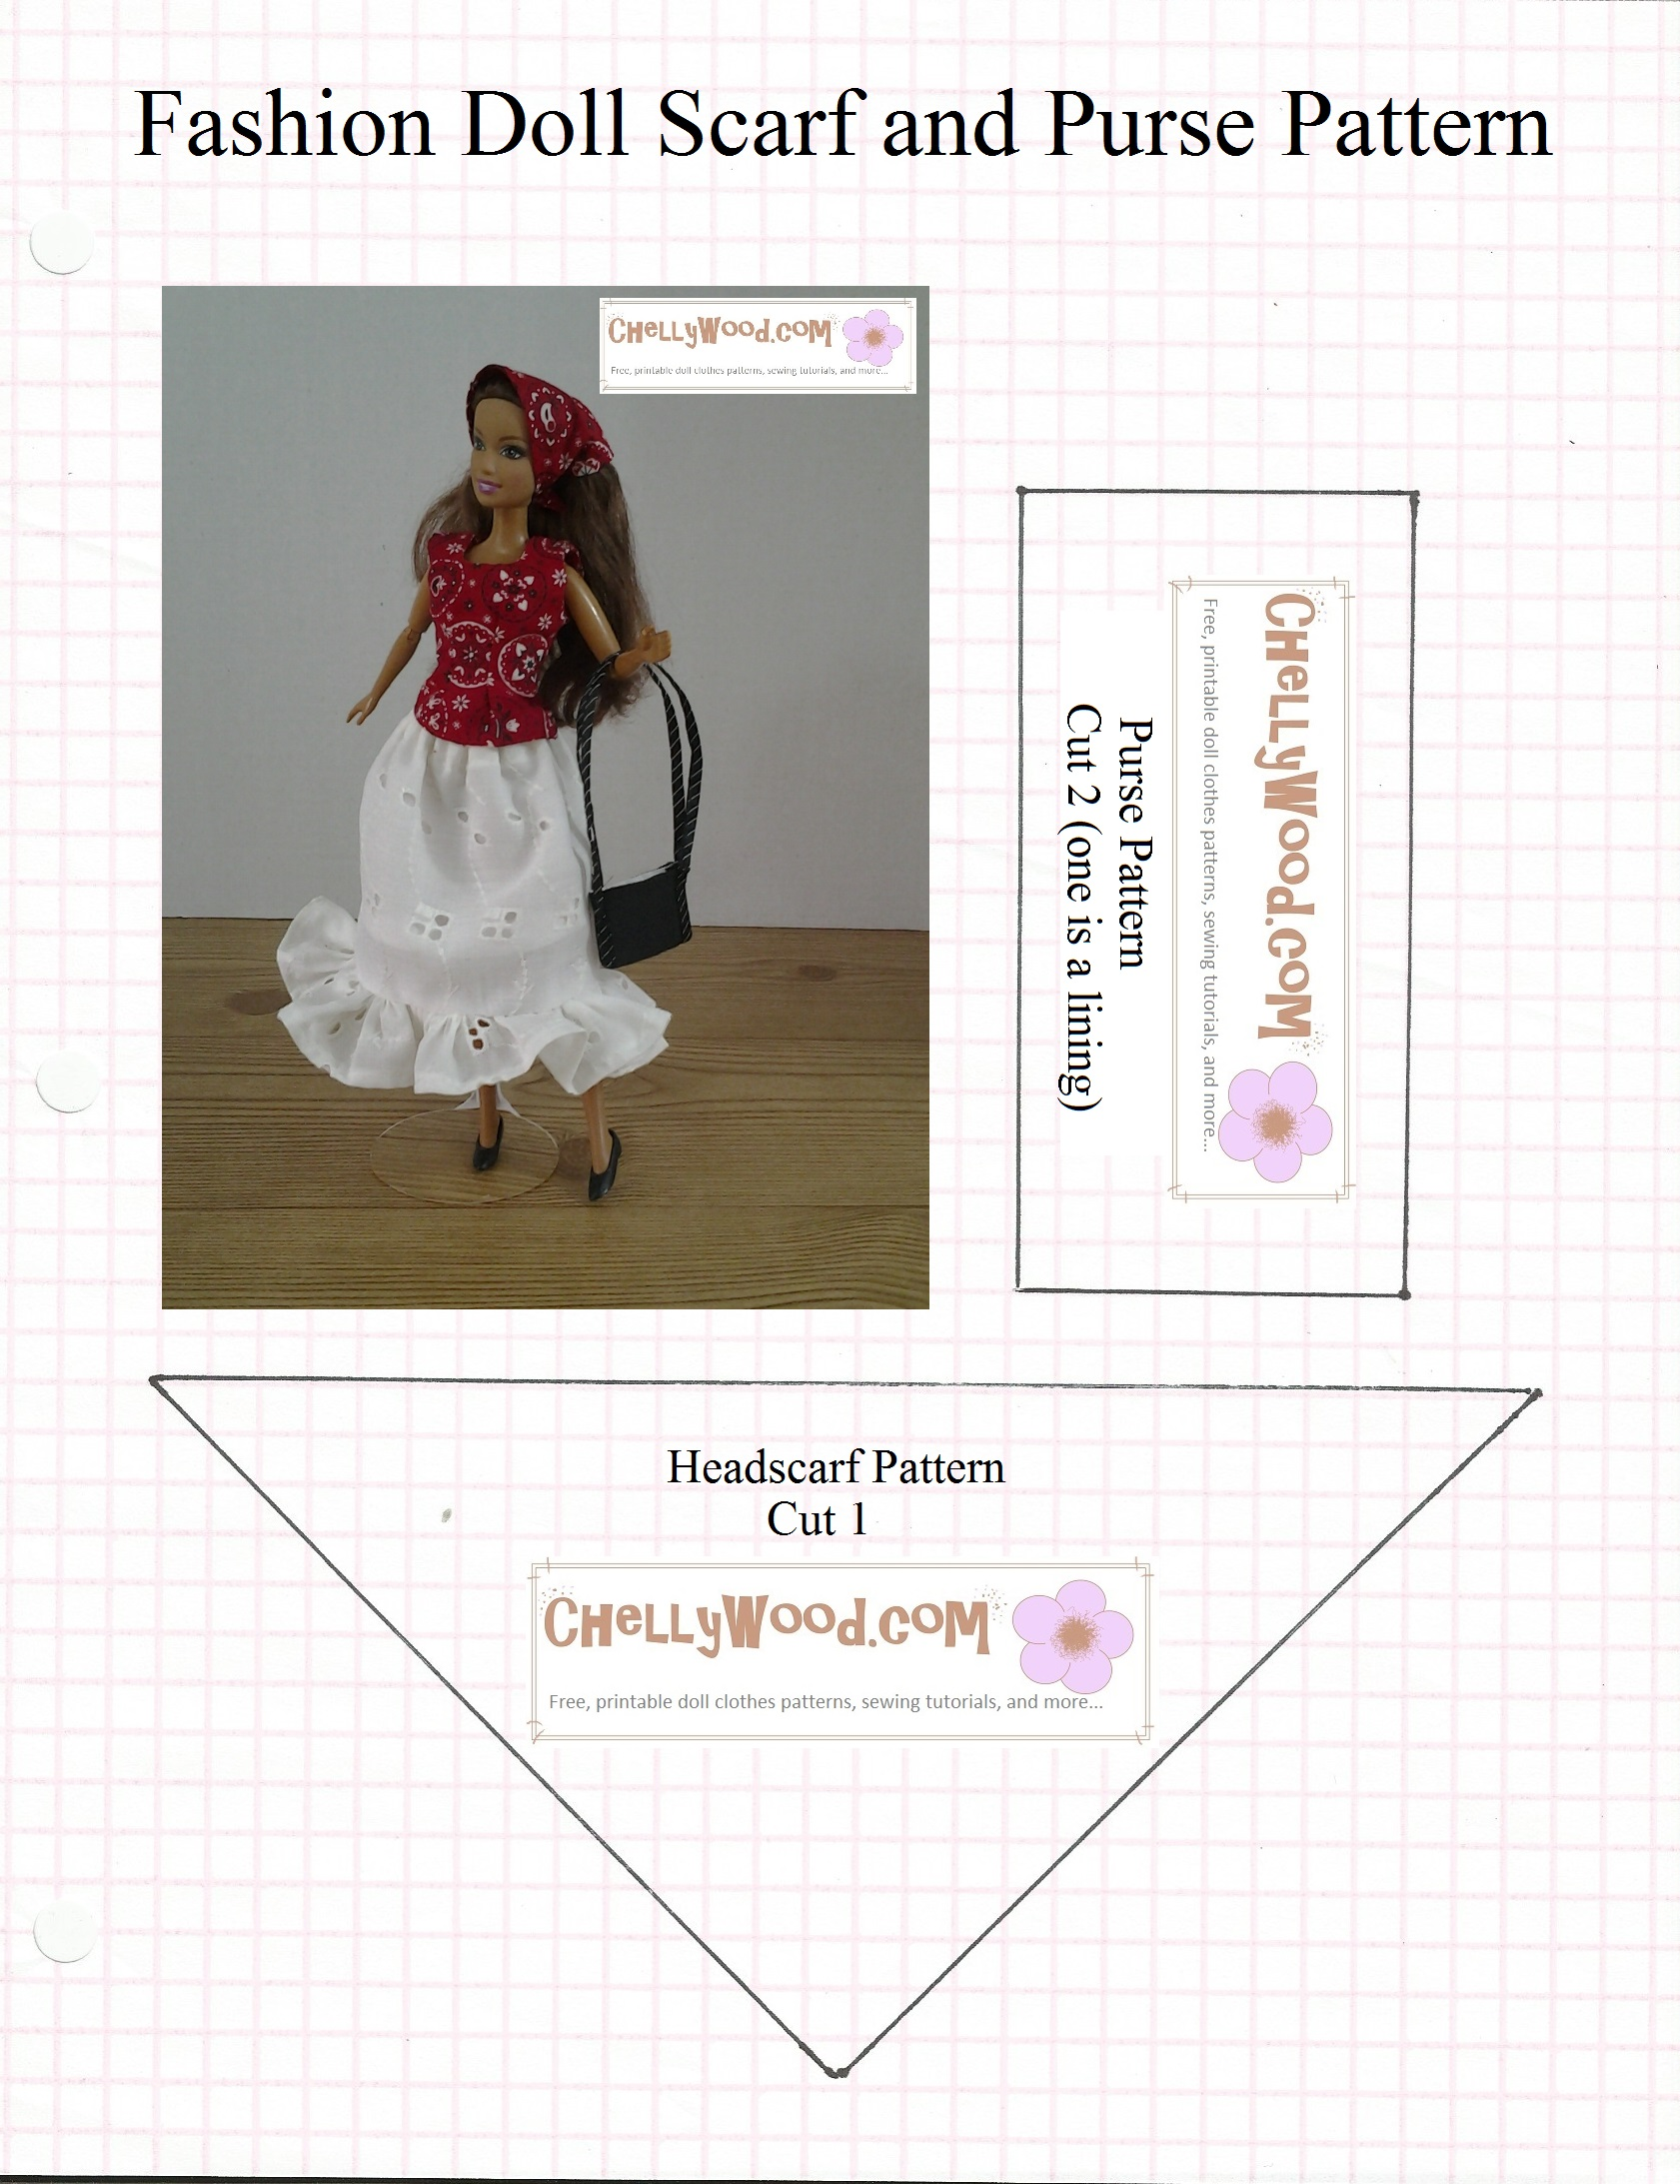 photo about Barbie Doll Clothes Patterns Free Printable titled HeadScarf practice for #FashionDolls is free of charge @